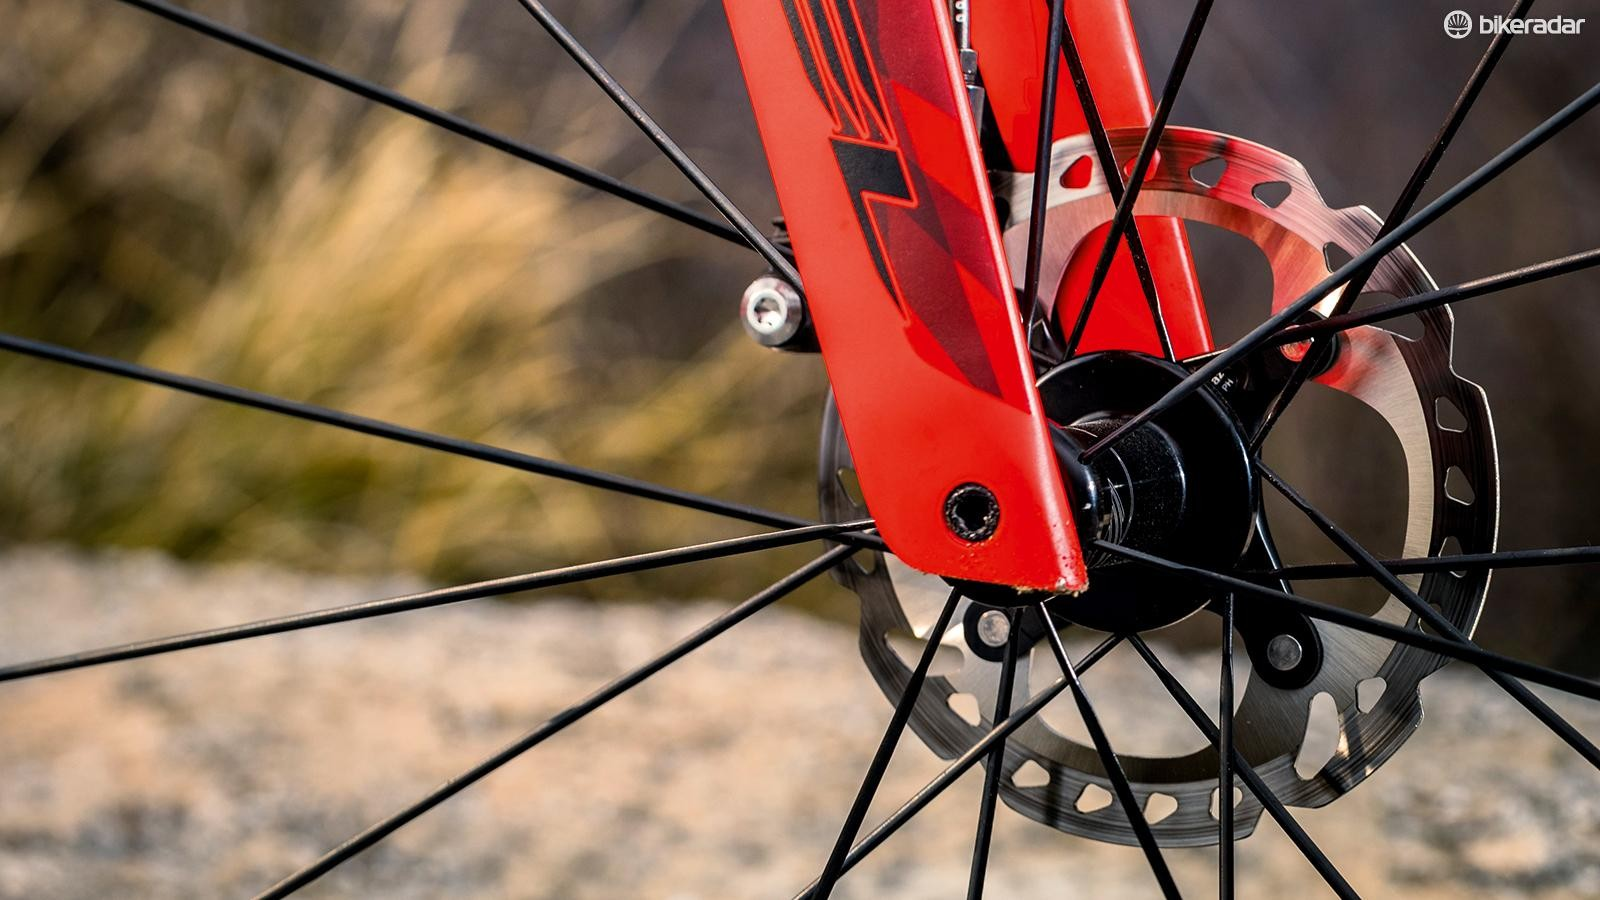 The aero race legend has been reinvented to adopt disc brakes